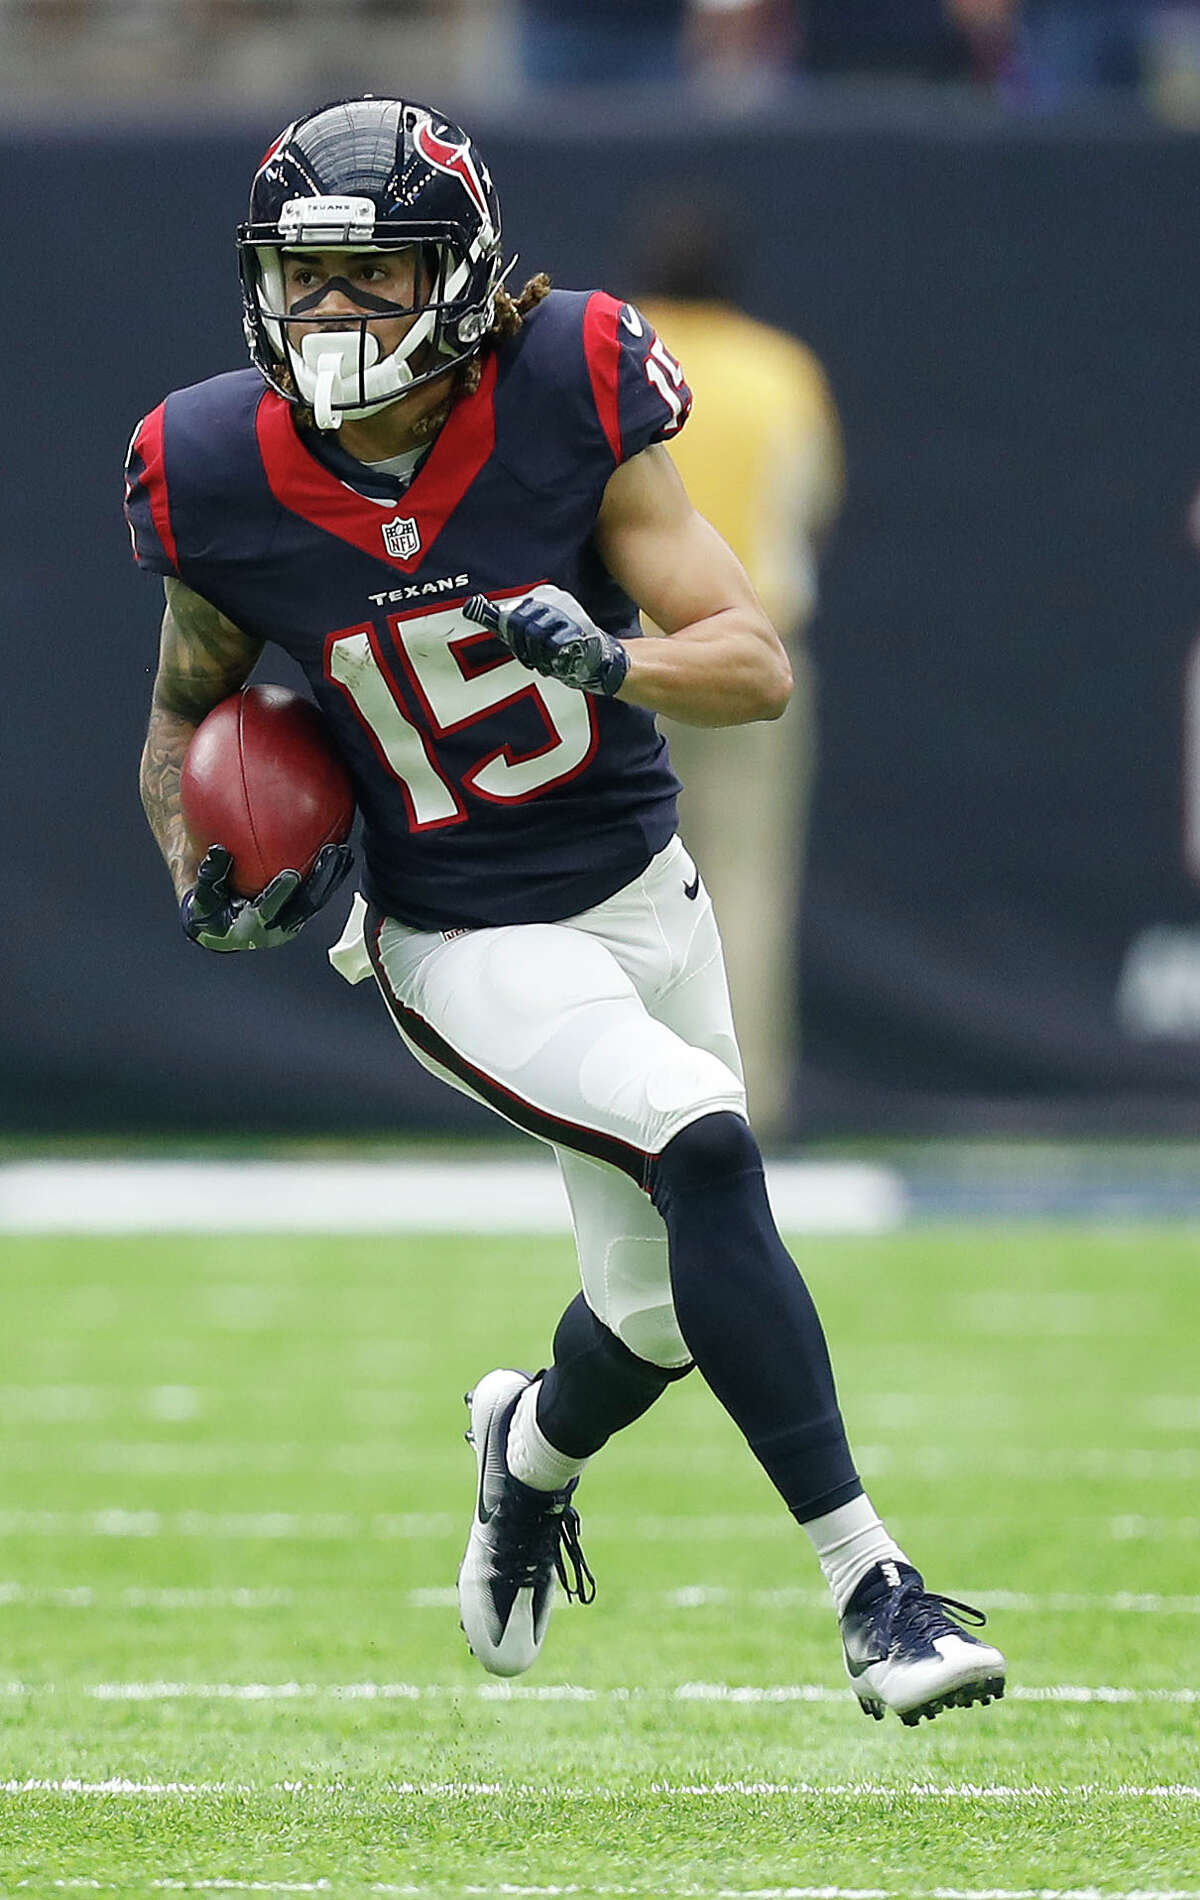 Will Fuller, the fastest player on the roster, got off to a fast start but has been slowed by injuries of late.